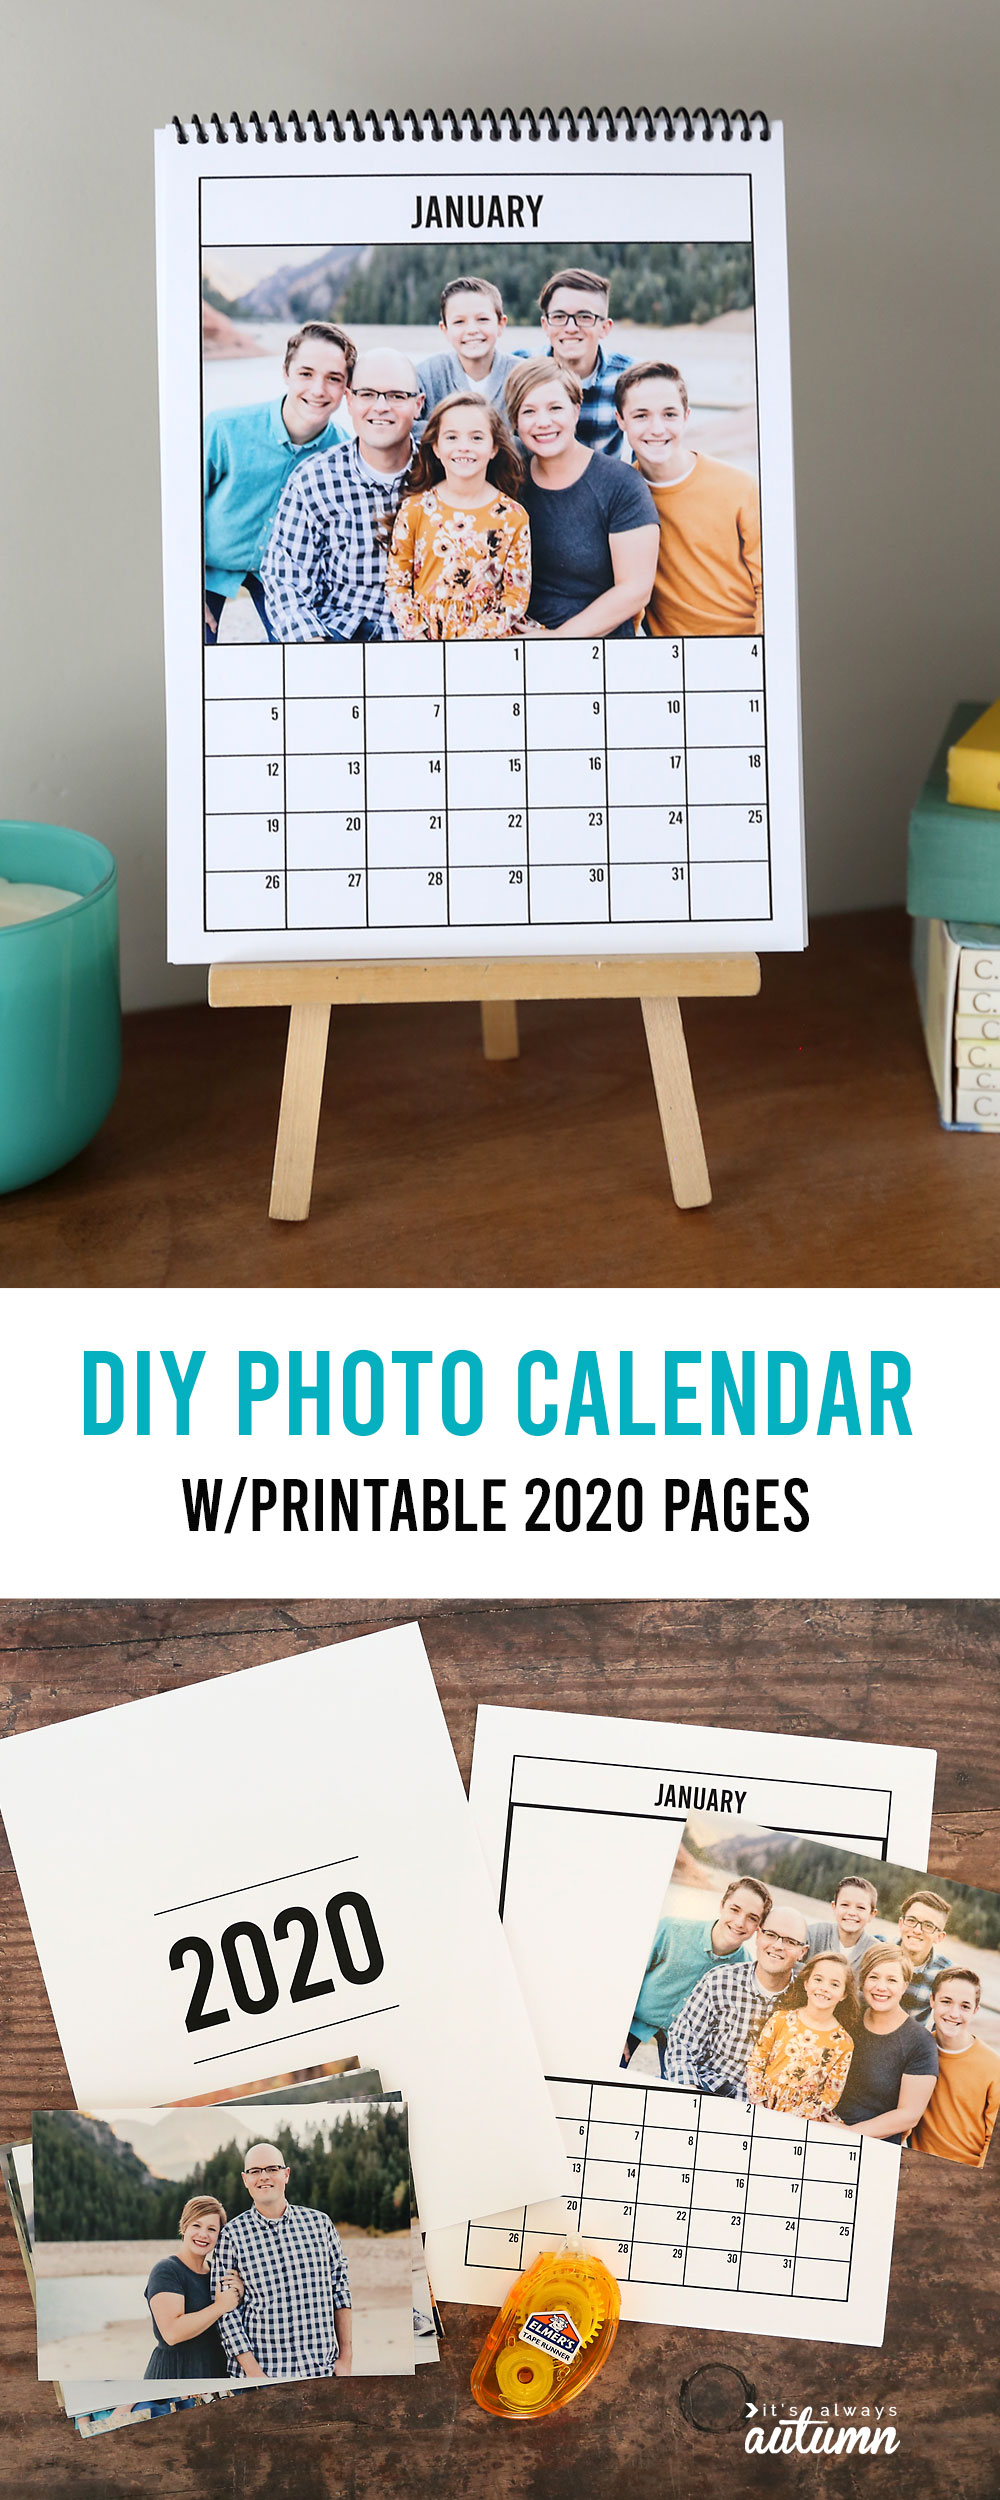 This printable 2020 photo calendar makes a great homemade gift!